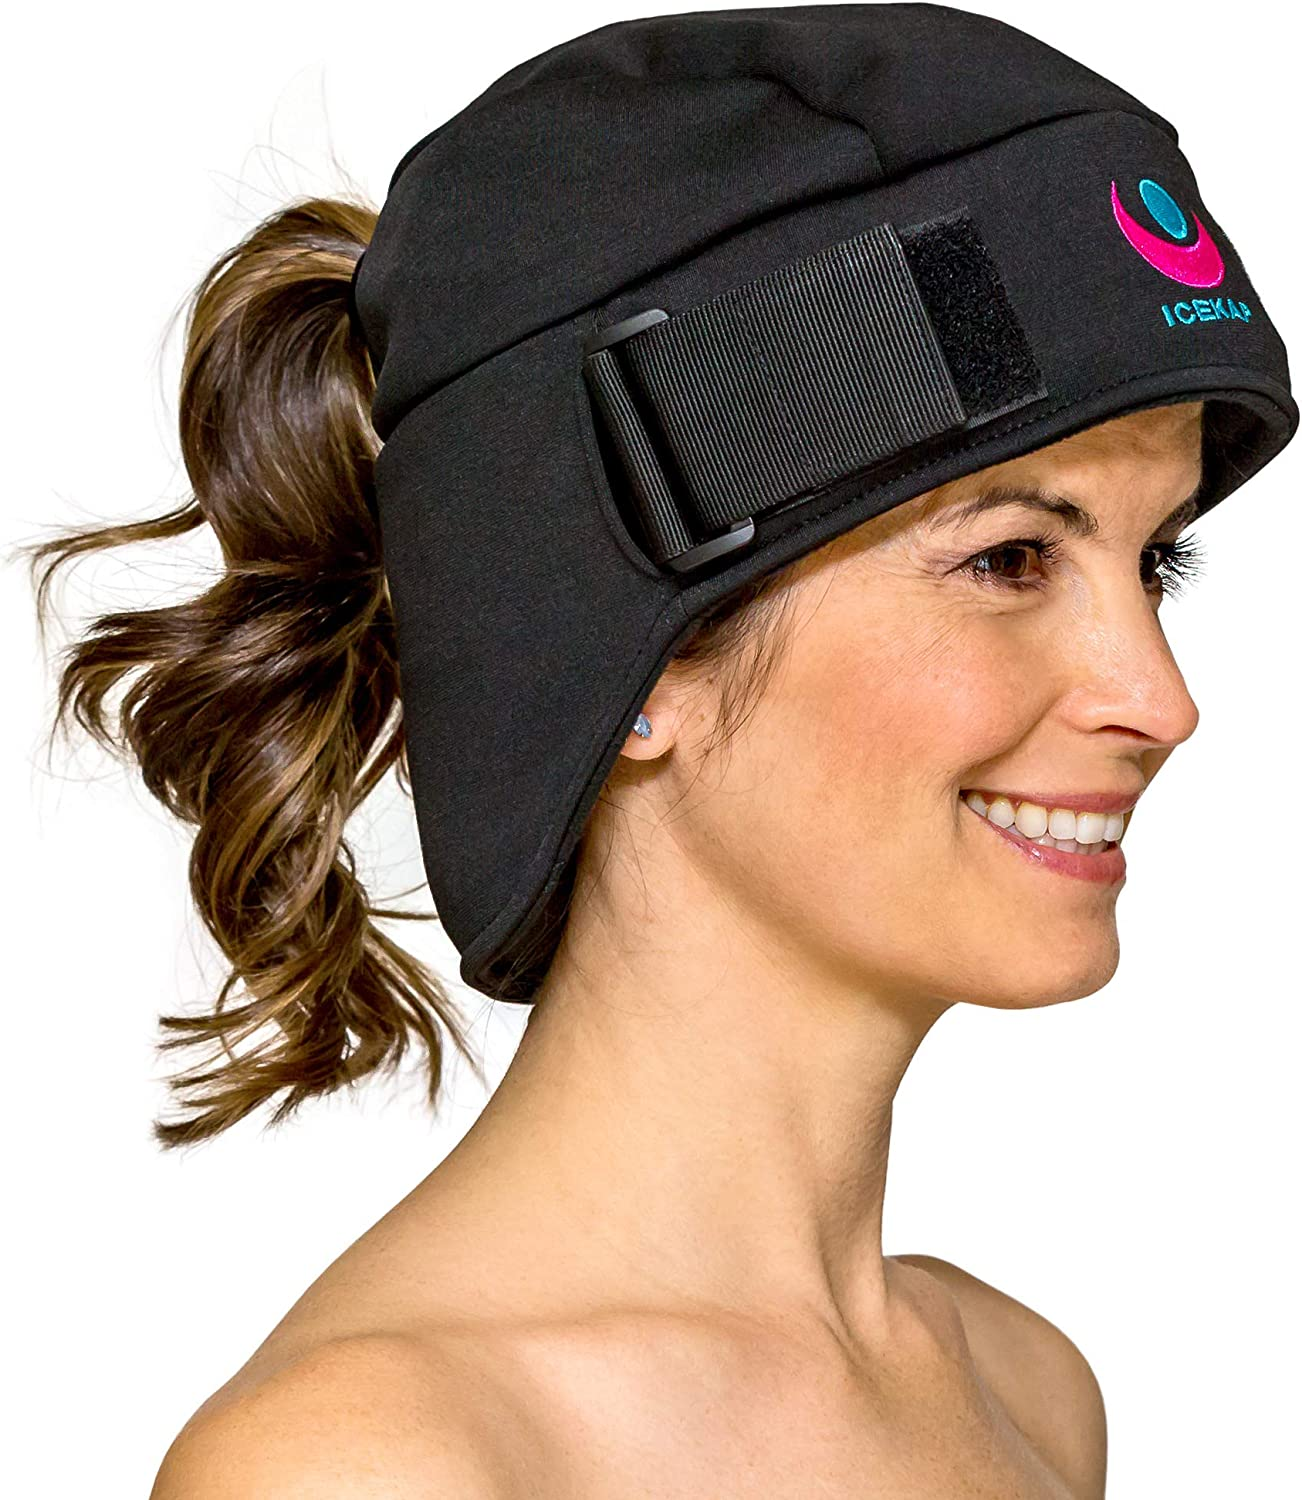 Icekap Migraine Cap - Patented Migraine Relief Headache Hat with 5 Gel Ice Pack - Ice Hat Lasts Up to 3 Hours! Icecap for Migraines, Chemo, Sinus Relief, Head Tension, Fever, Flu, Menopause and More …